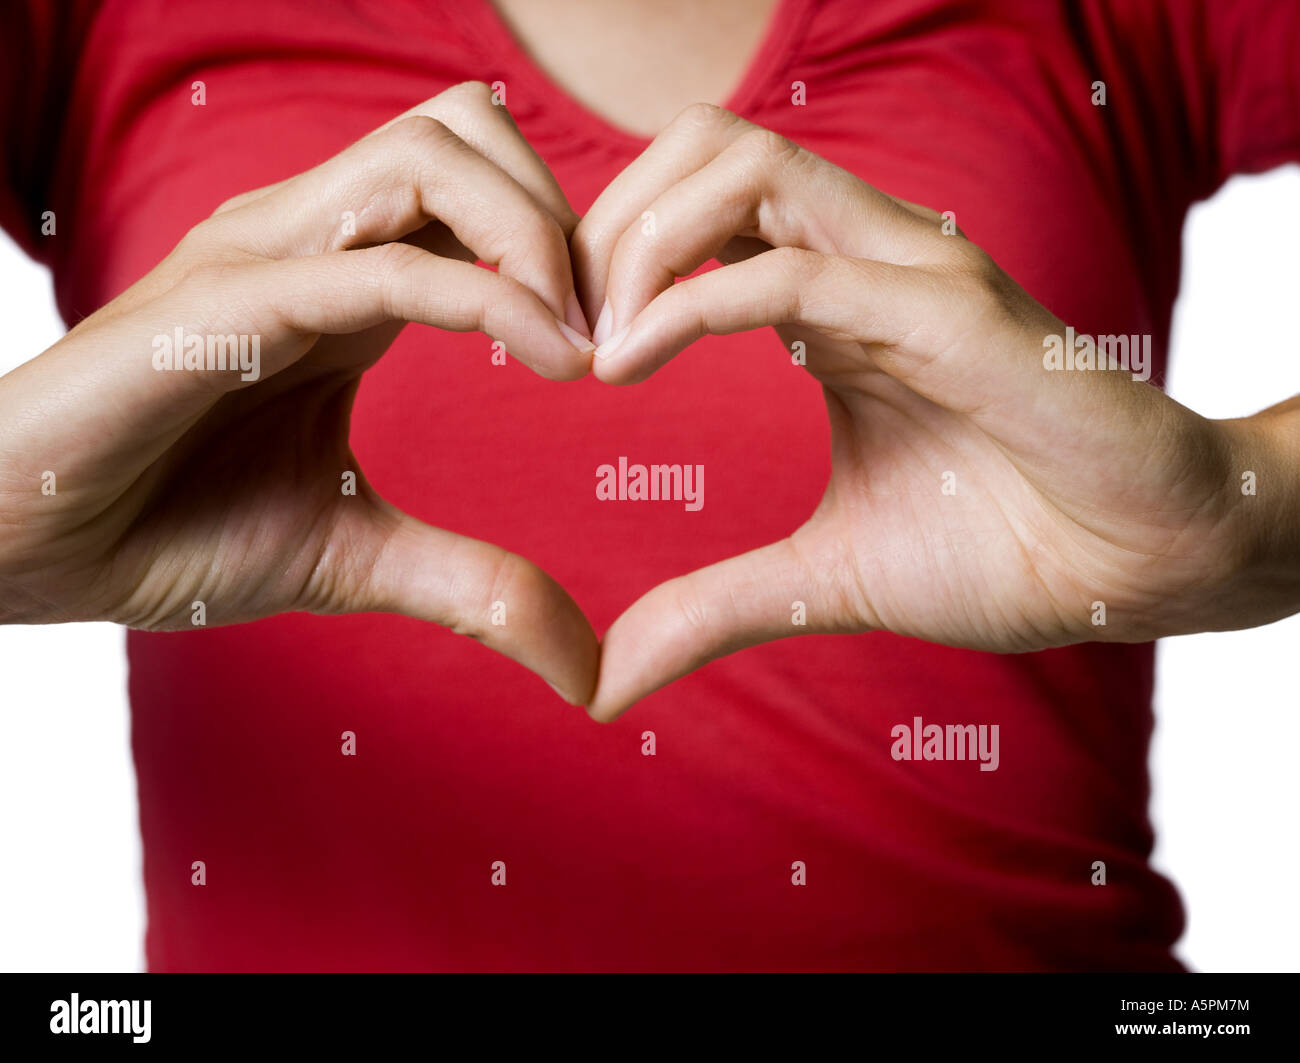 Woman Making A Heart Shape Symbol With Her Hands Stock Photo